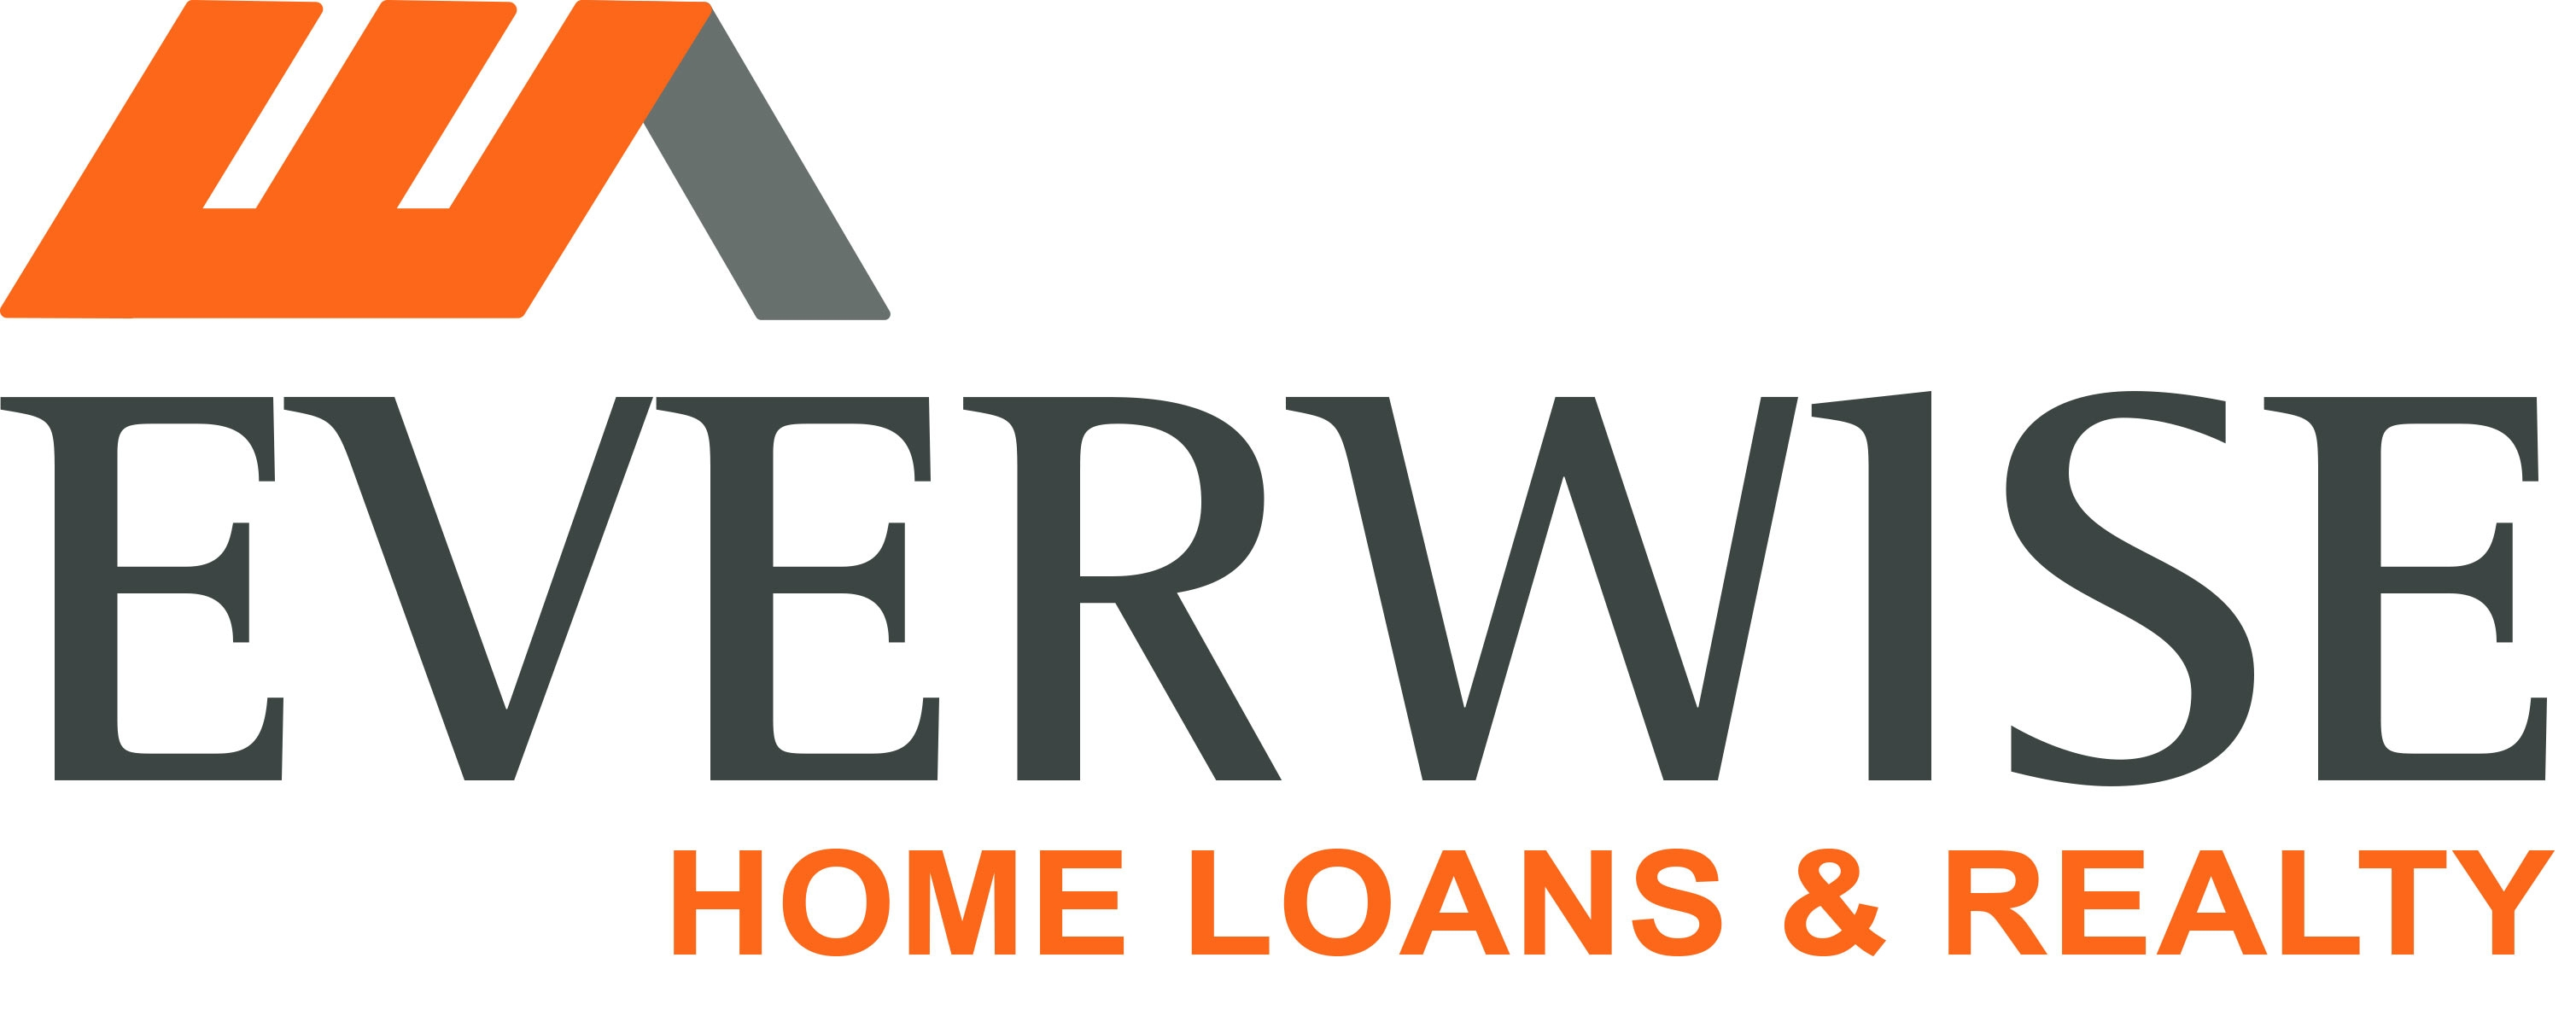 Usda Home Loans >> Fha Jumbo Conventional Va Usda In Irvine California Everwise